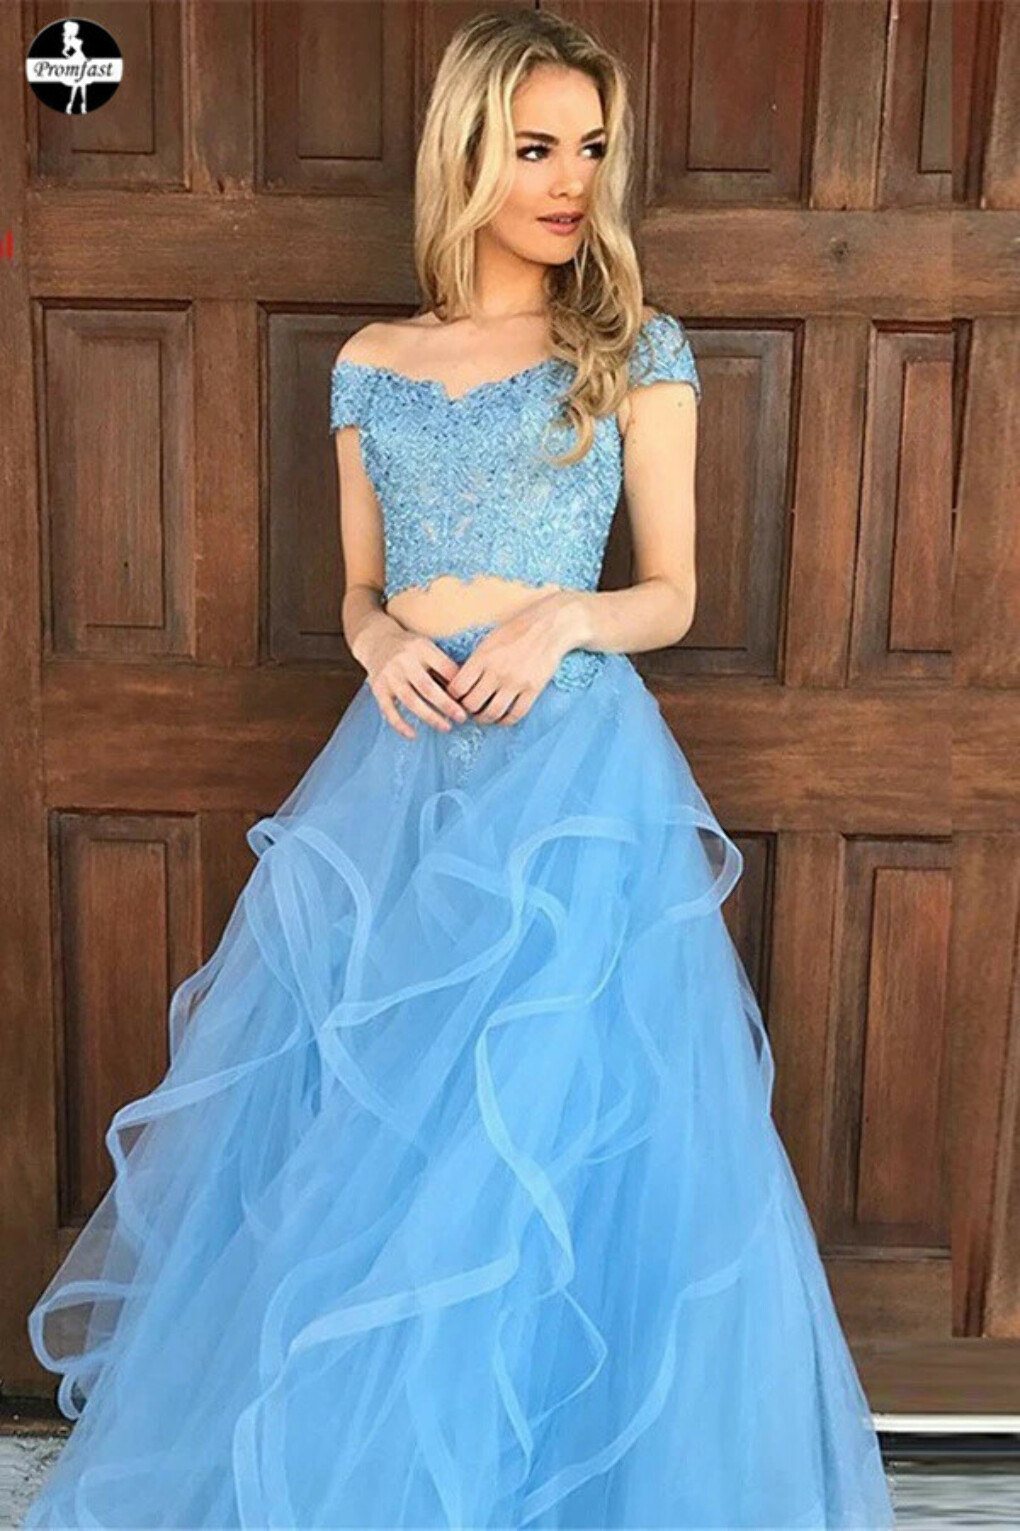 Promfast Sky Blue Tulle Two Piece Off the Shoulder Prom Dresses with Appliques PFP1989